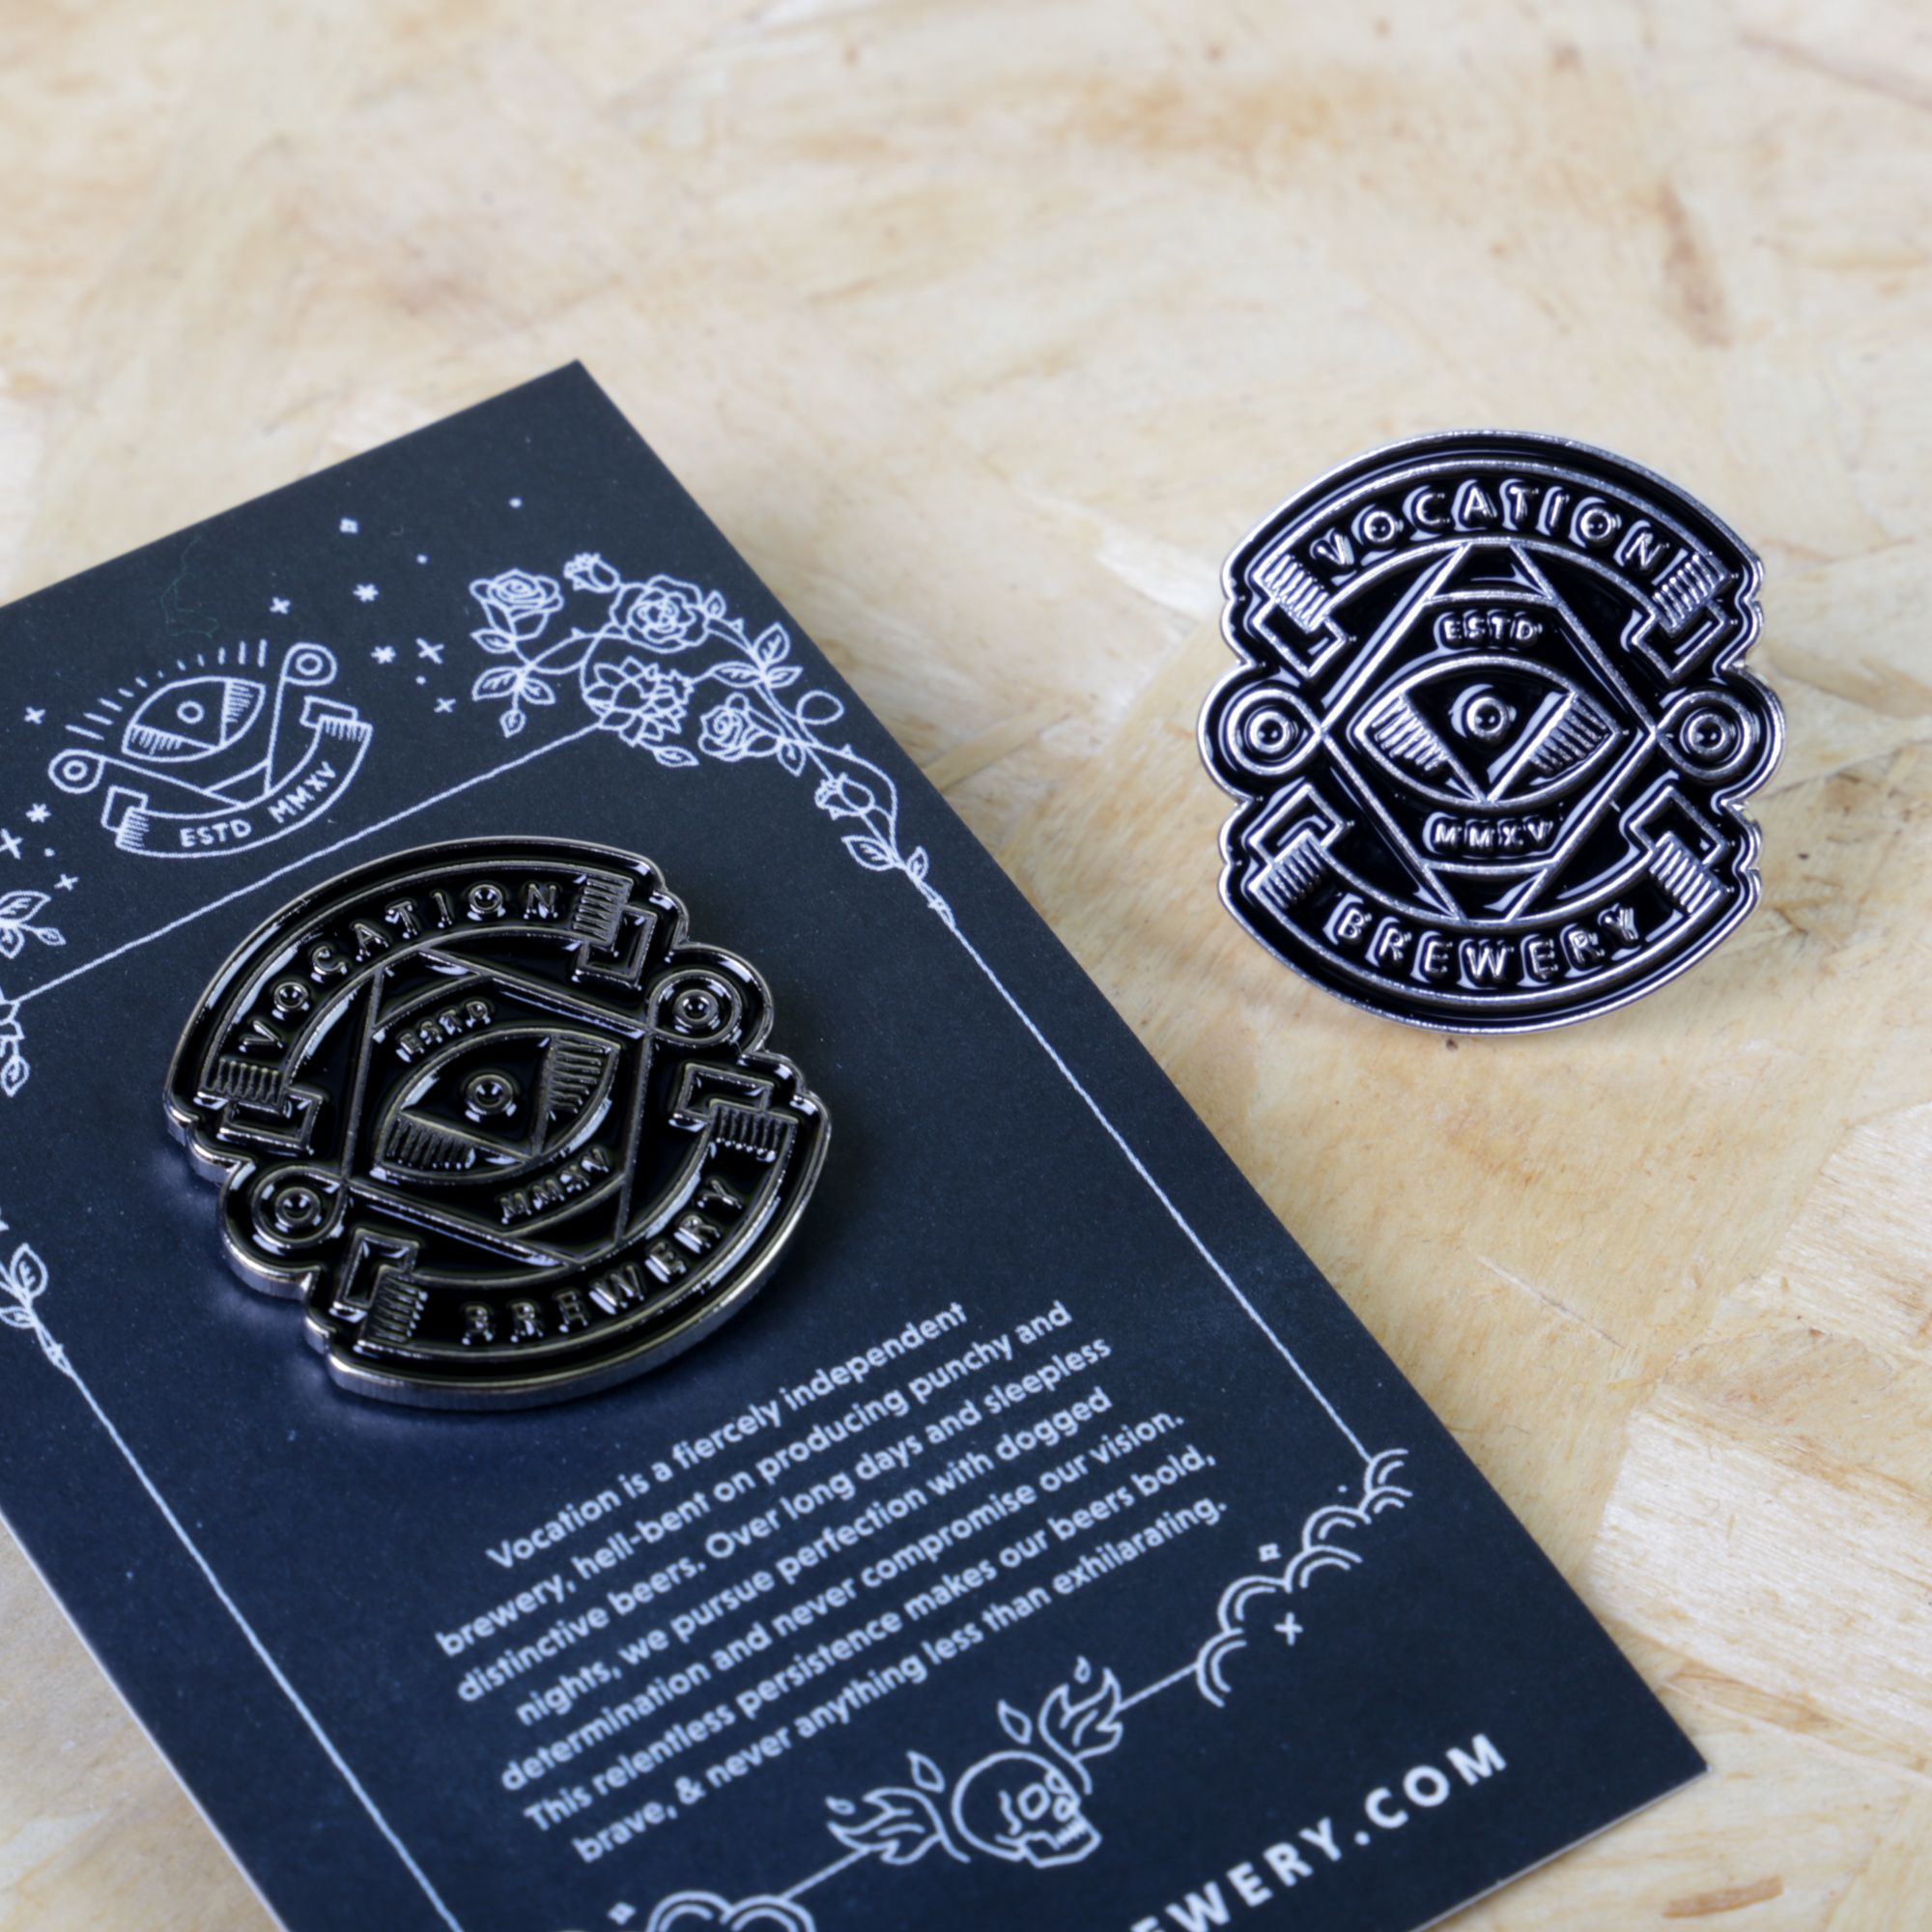 These enamel pin badges for Vocation Brewery have some serious ...